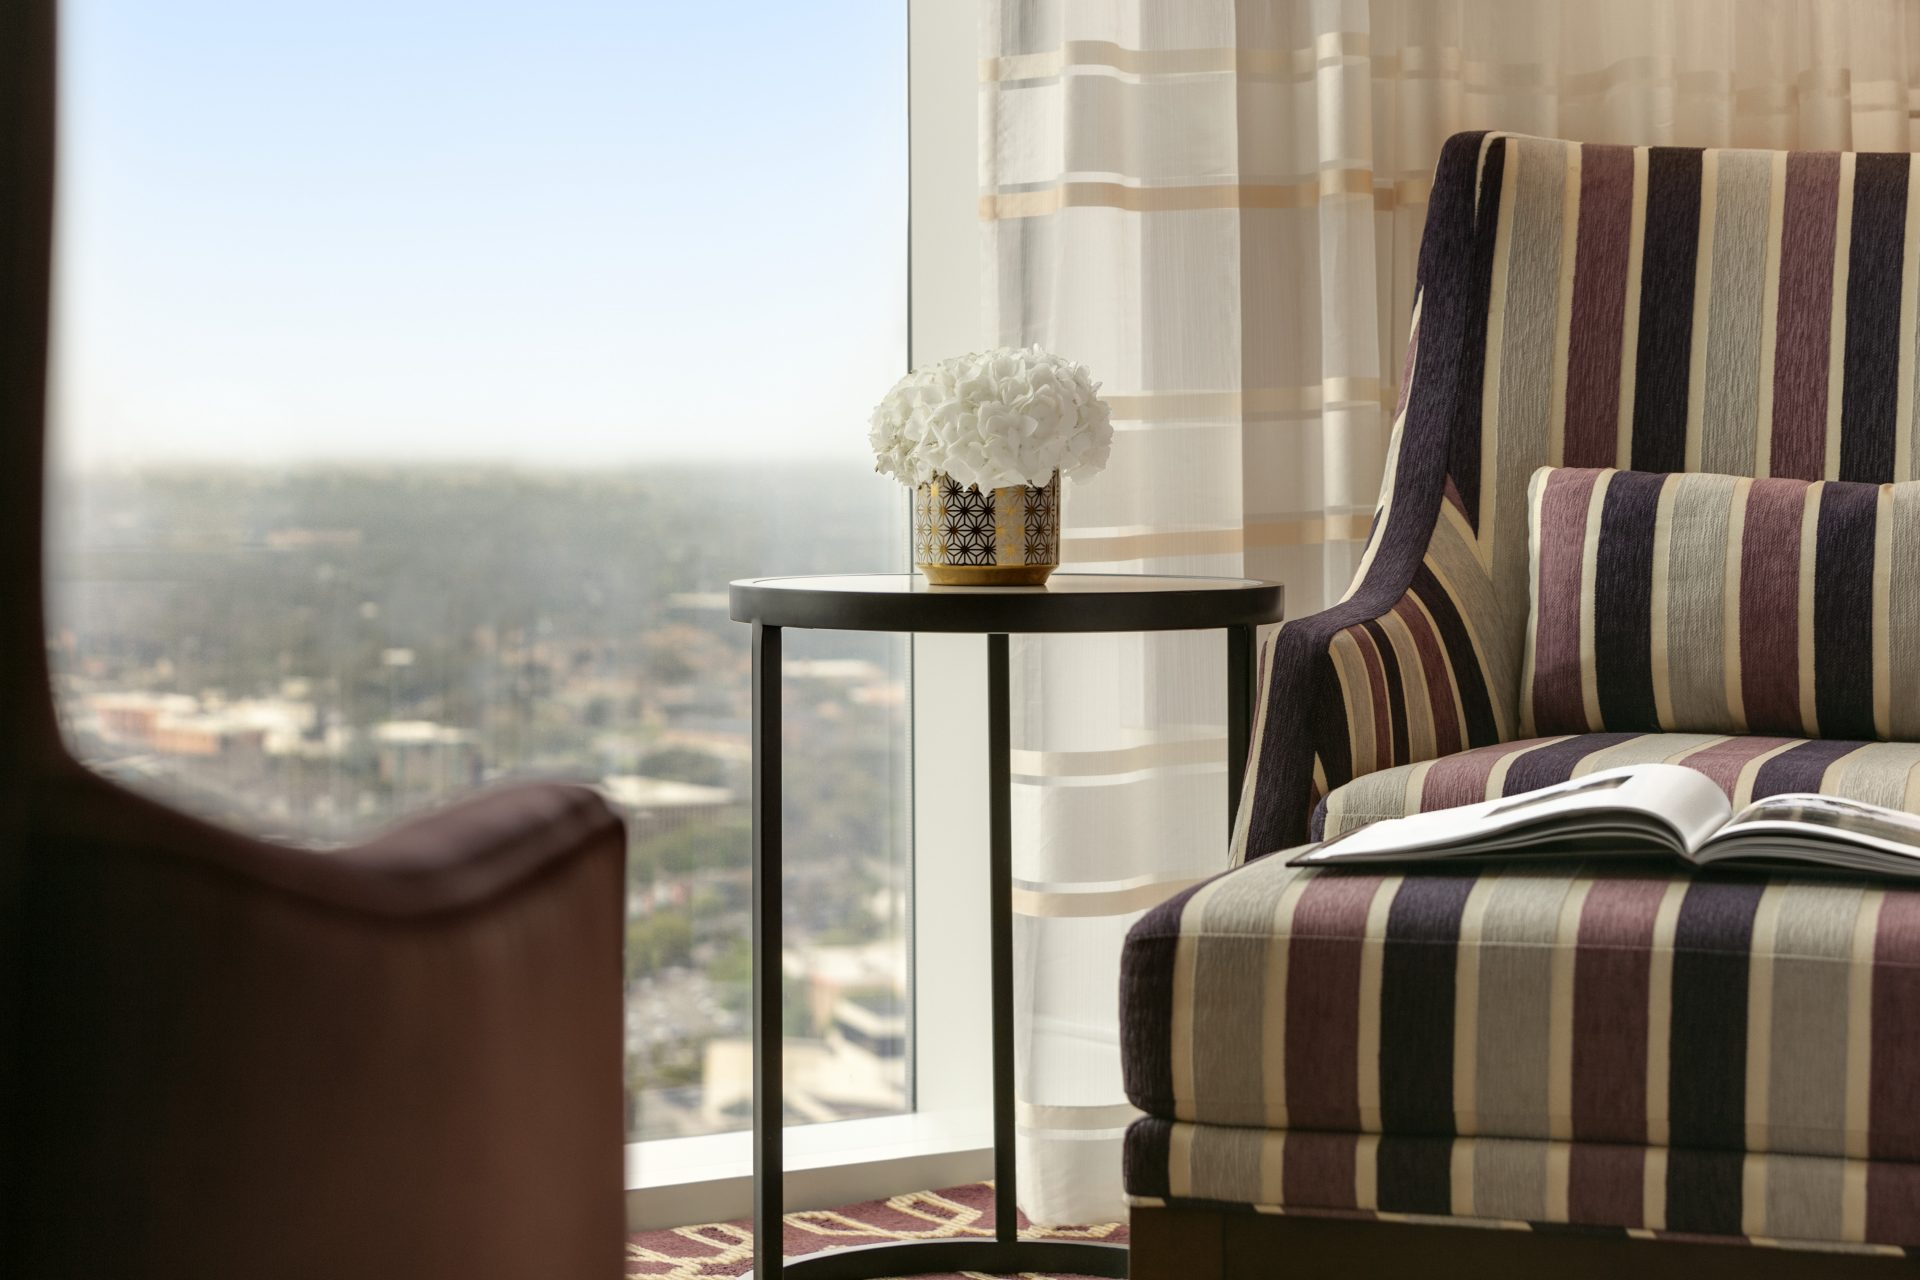 Close up view armchair and small table next to large window with scenic city view